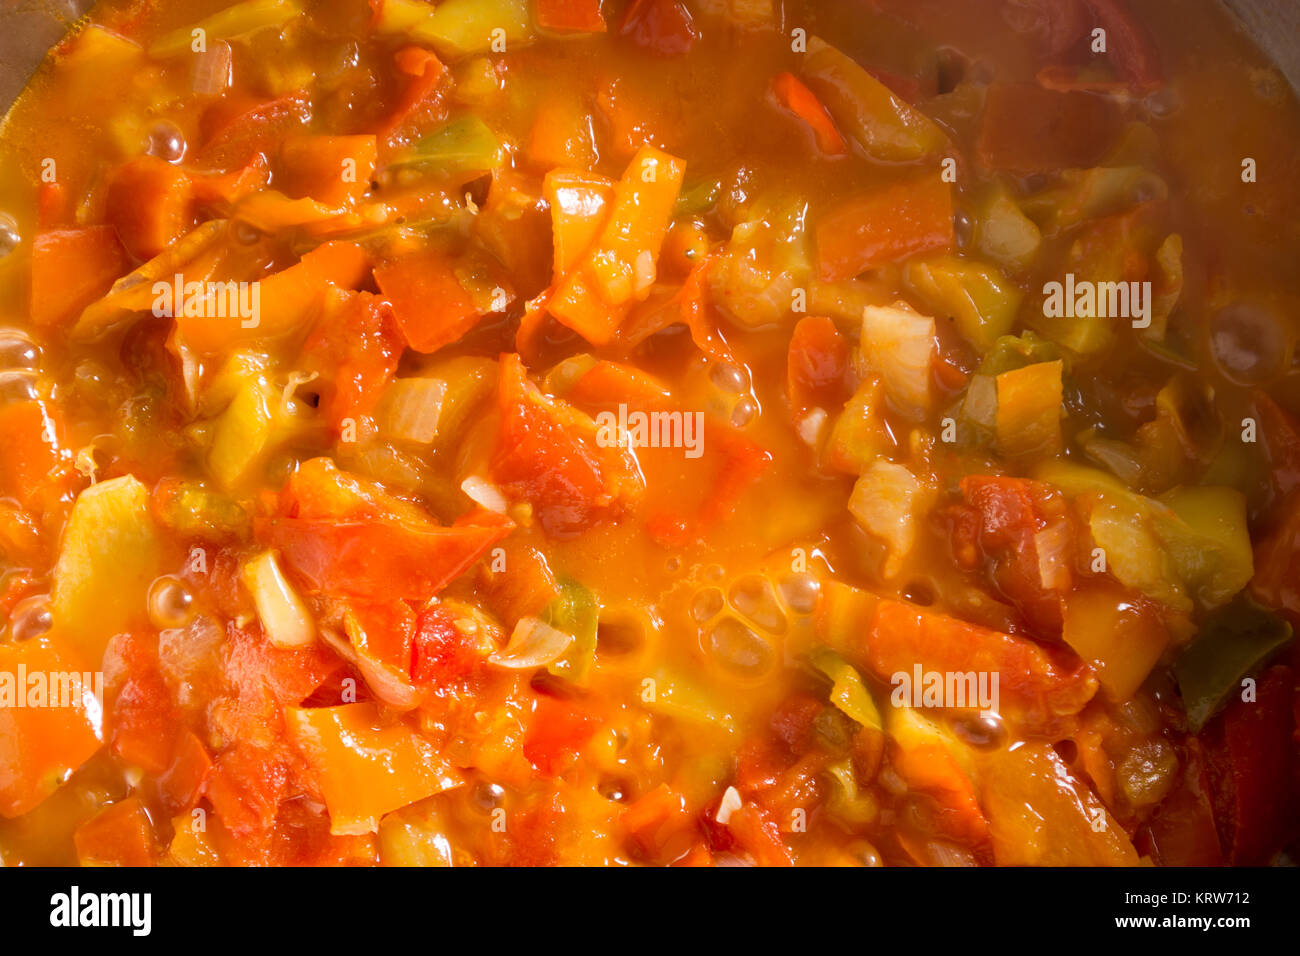 Cooking stew with mixed and colorfull vegetables - Stock Image